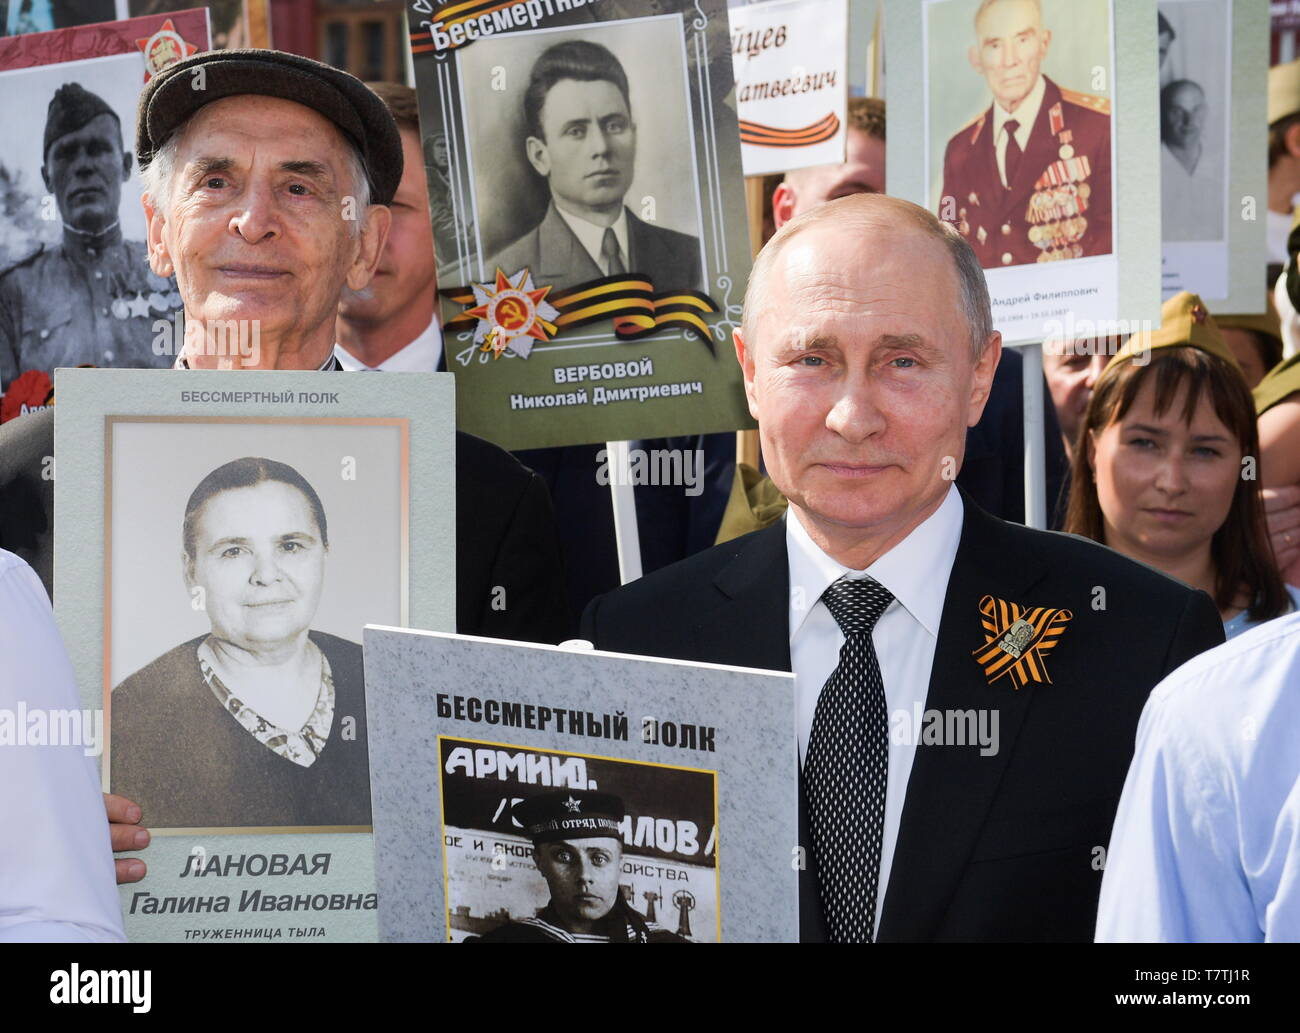 Moscow, Russia. 09th May, 2019. MOSCOW, RUSSIA - MAY 9, 2019: Actor Vasily Lanovoy and Russia's President Vladimir Putin (L-R front) carry portraits of their relatives who fought in World War II as they take part in the Immortal Regiment march in Red Square to mark the 74th anniversary of the Victory over Nazi Germany in the Great Patriotic War, the Eastern Front of World War II. Alexei Druzhinin/Russian Presidential Press and Informationa Office/TASS Credit: ITAR-TASS News Agency/Alamy Live News - Stock Image